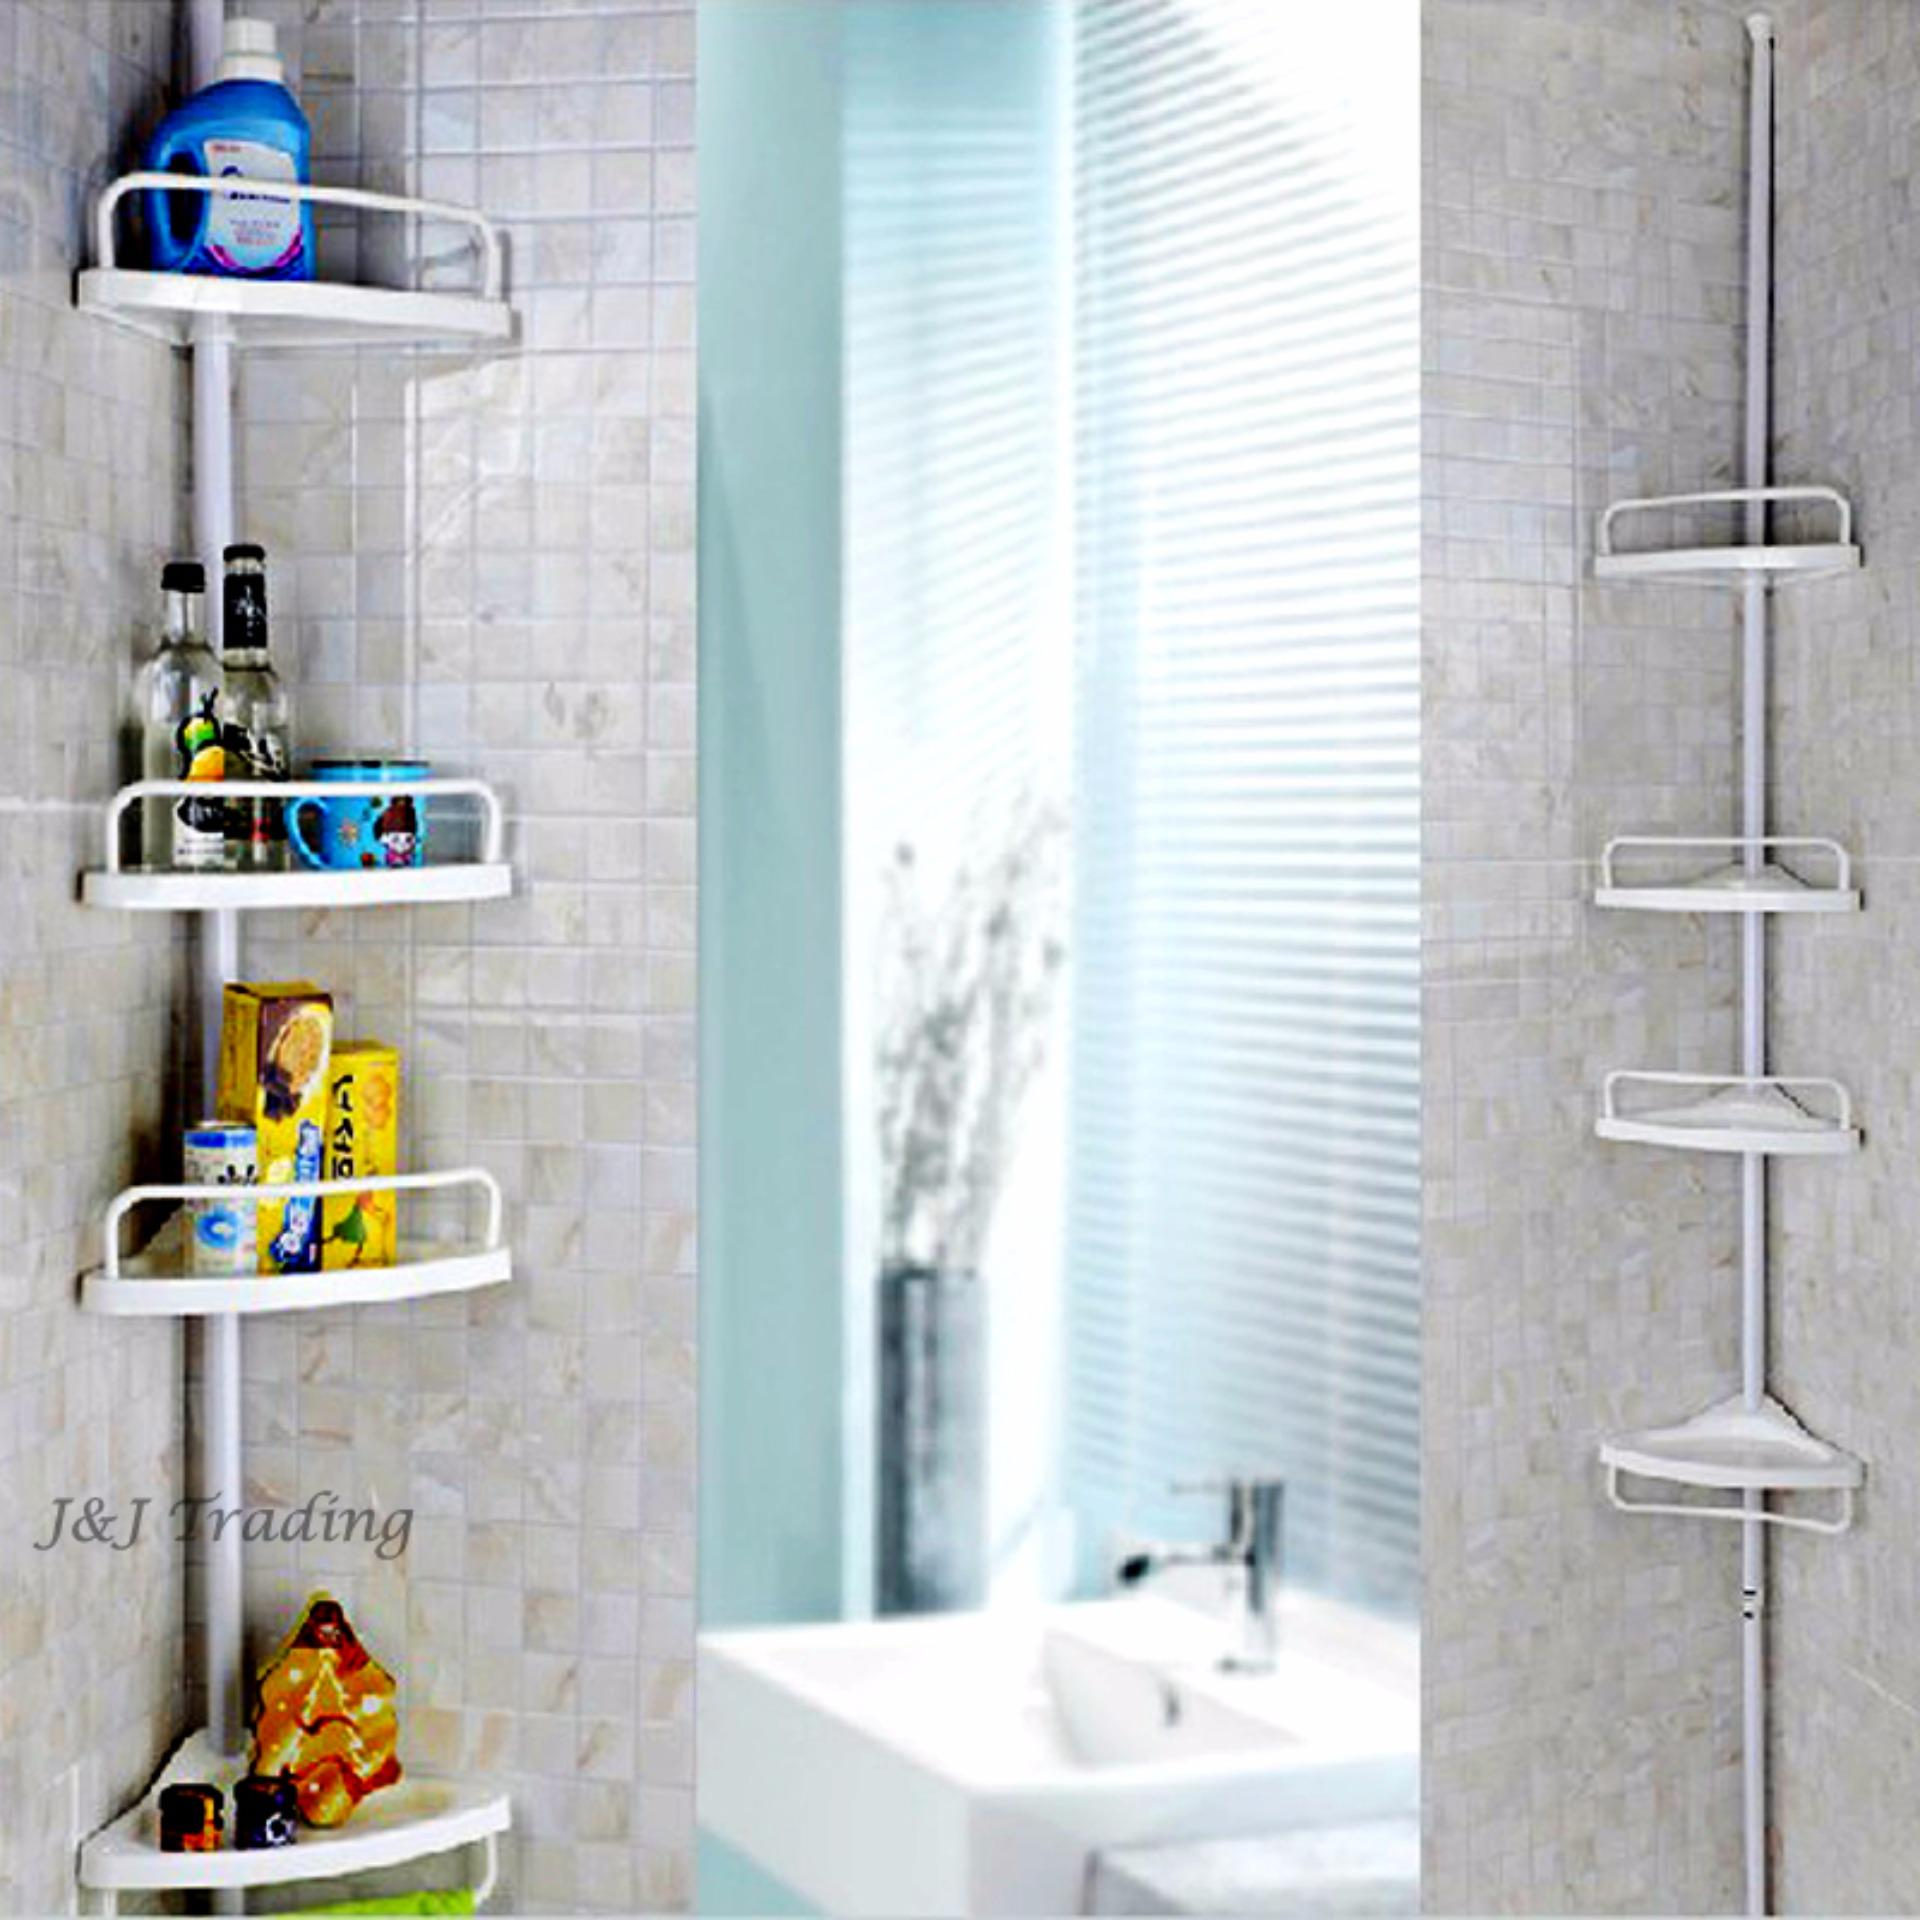 Philippines | J&J Large Multi Bathroom Corner Shelf (White) Price Me ...